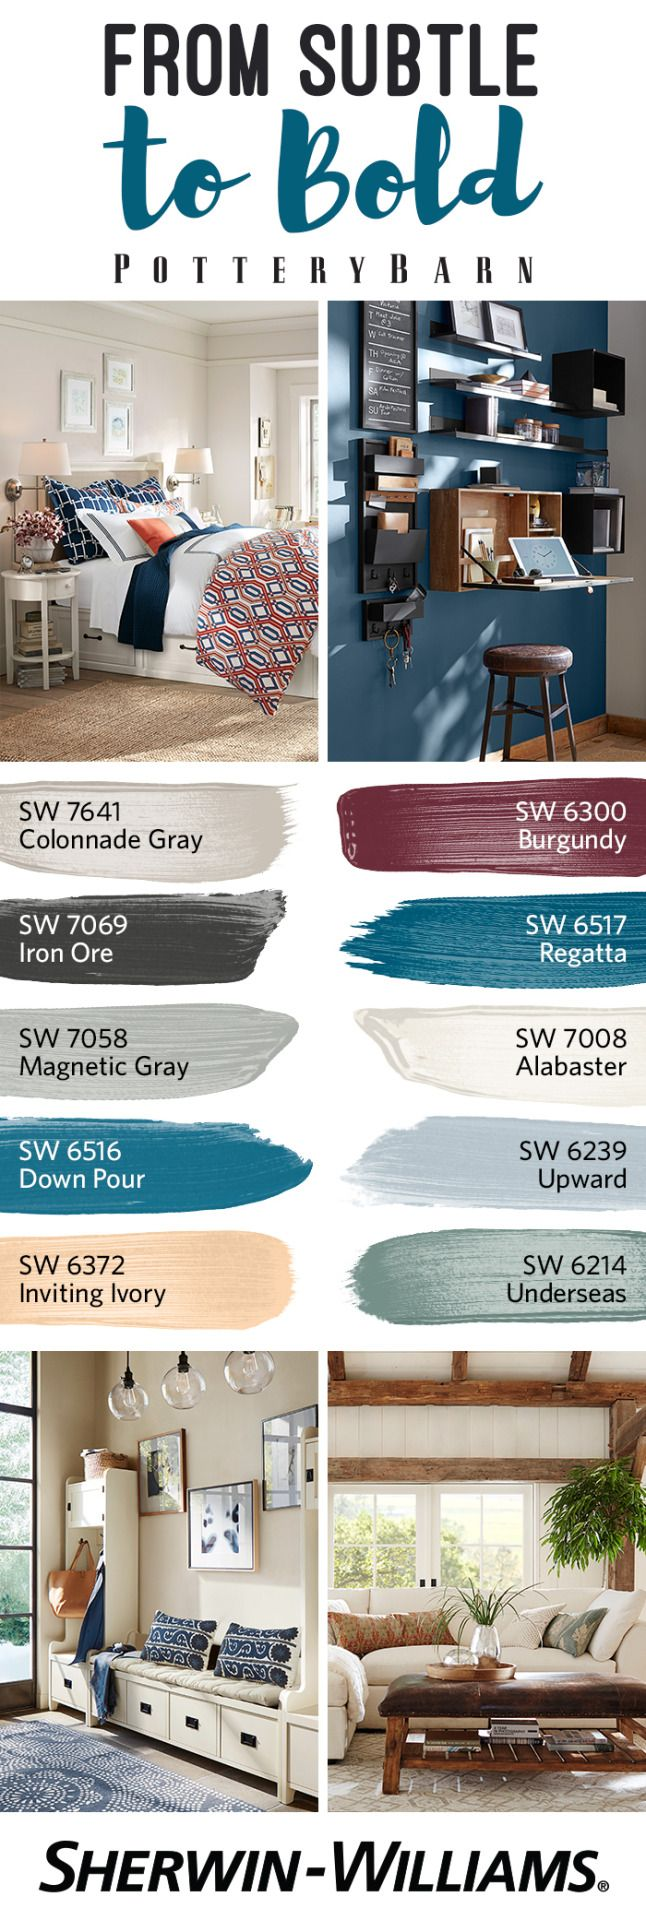 When you explore the Pottery Barn Fall/Winter 2016 Palette, you'll discover